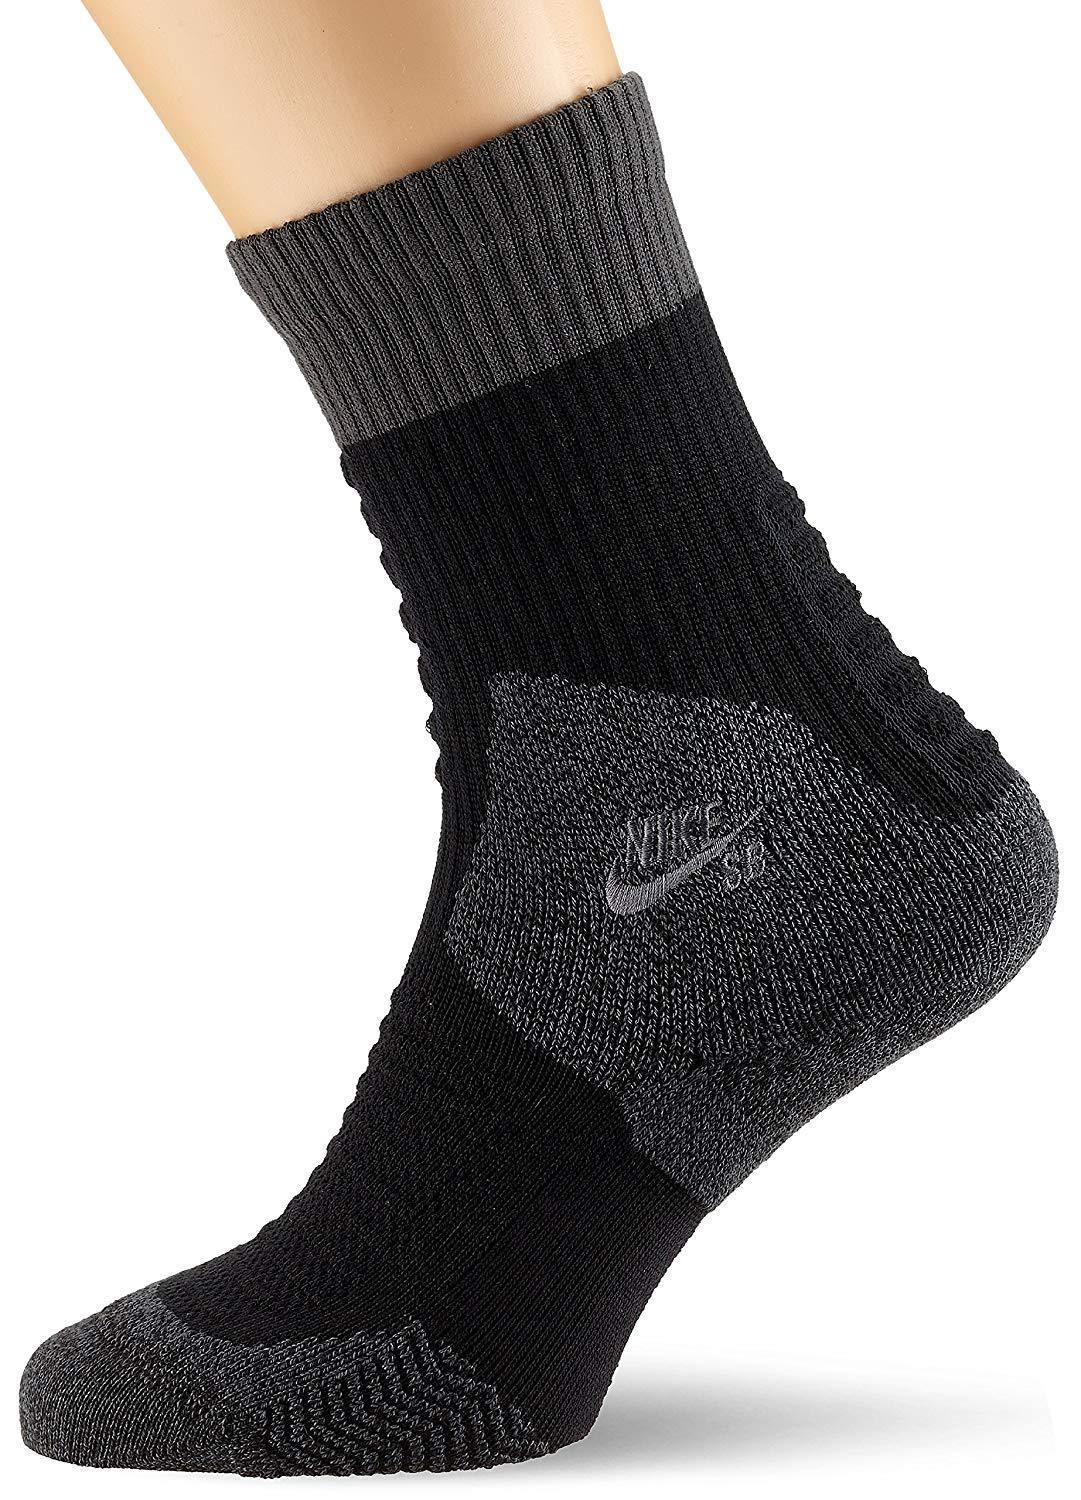 Nike Men's SB Elite Crew Socks Medium (shoe size 6-8) (Grey/Black)